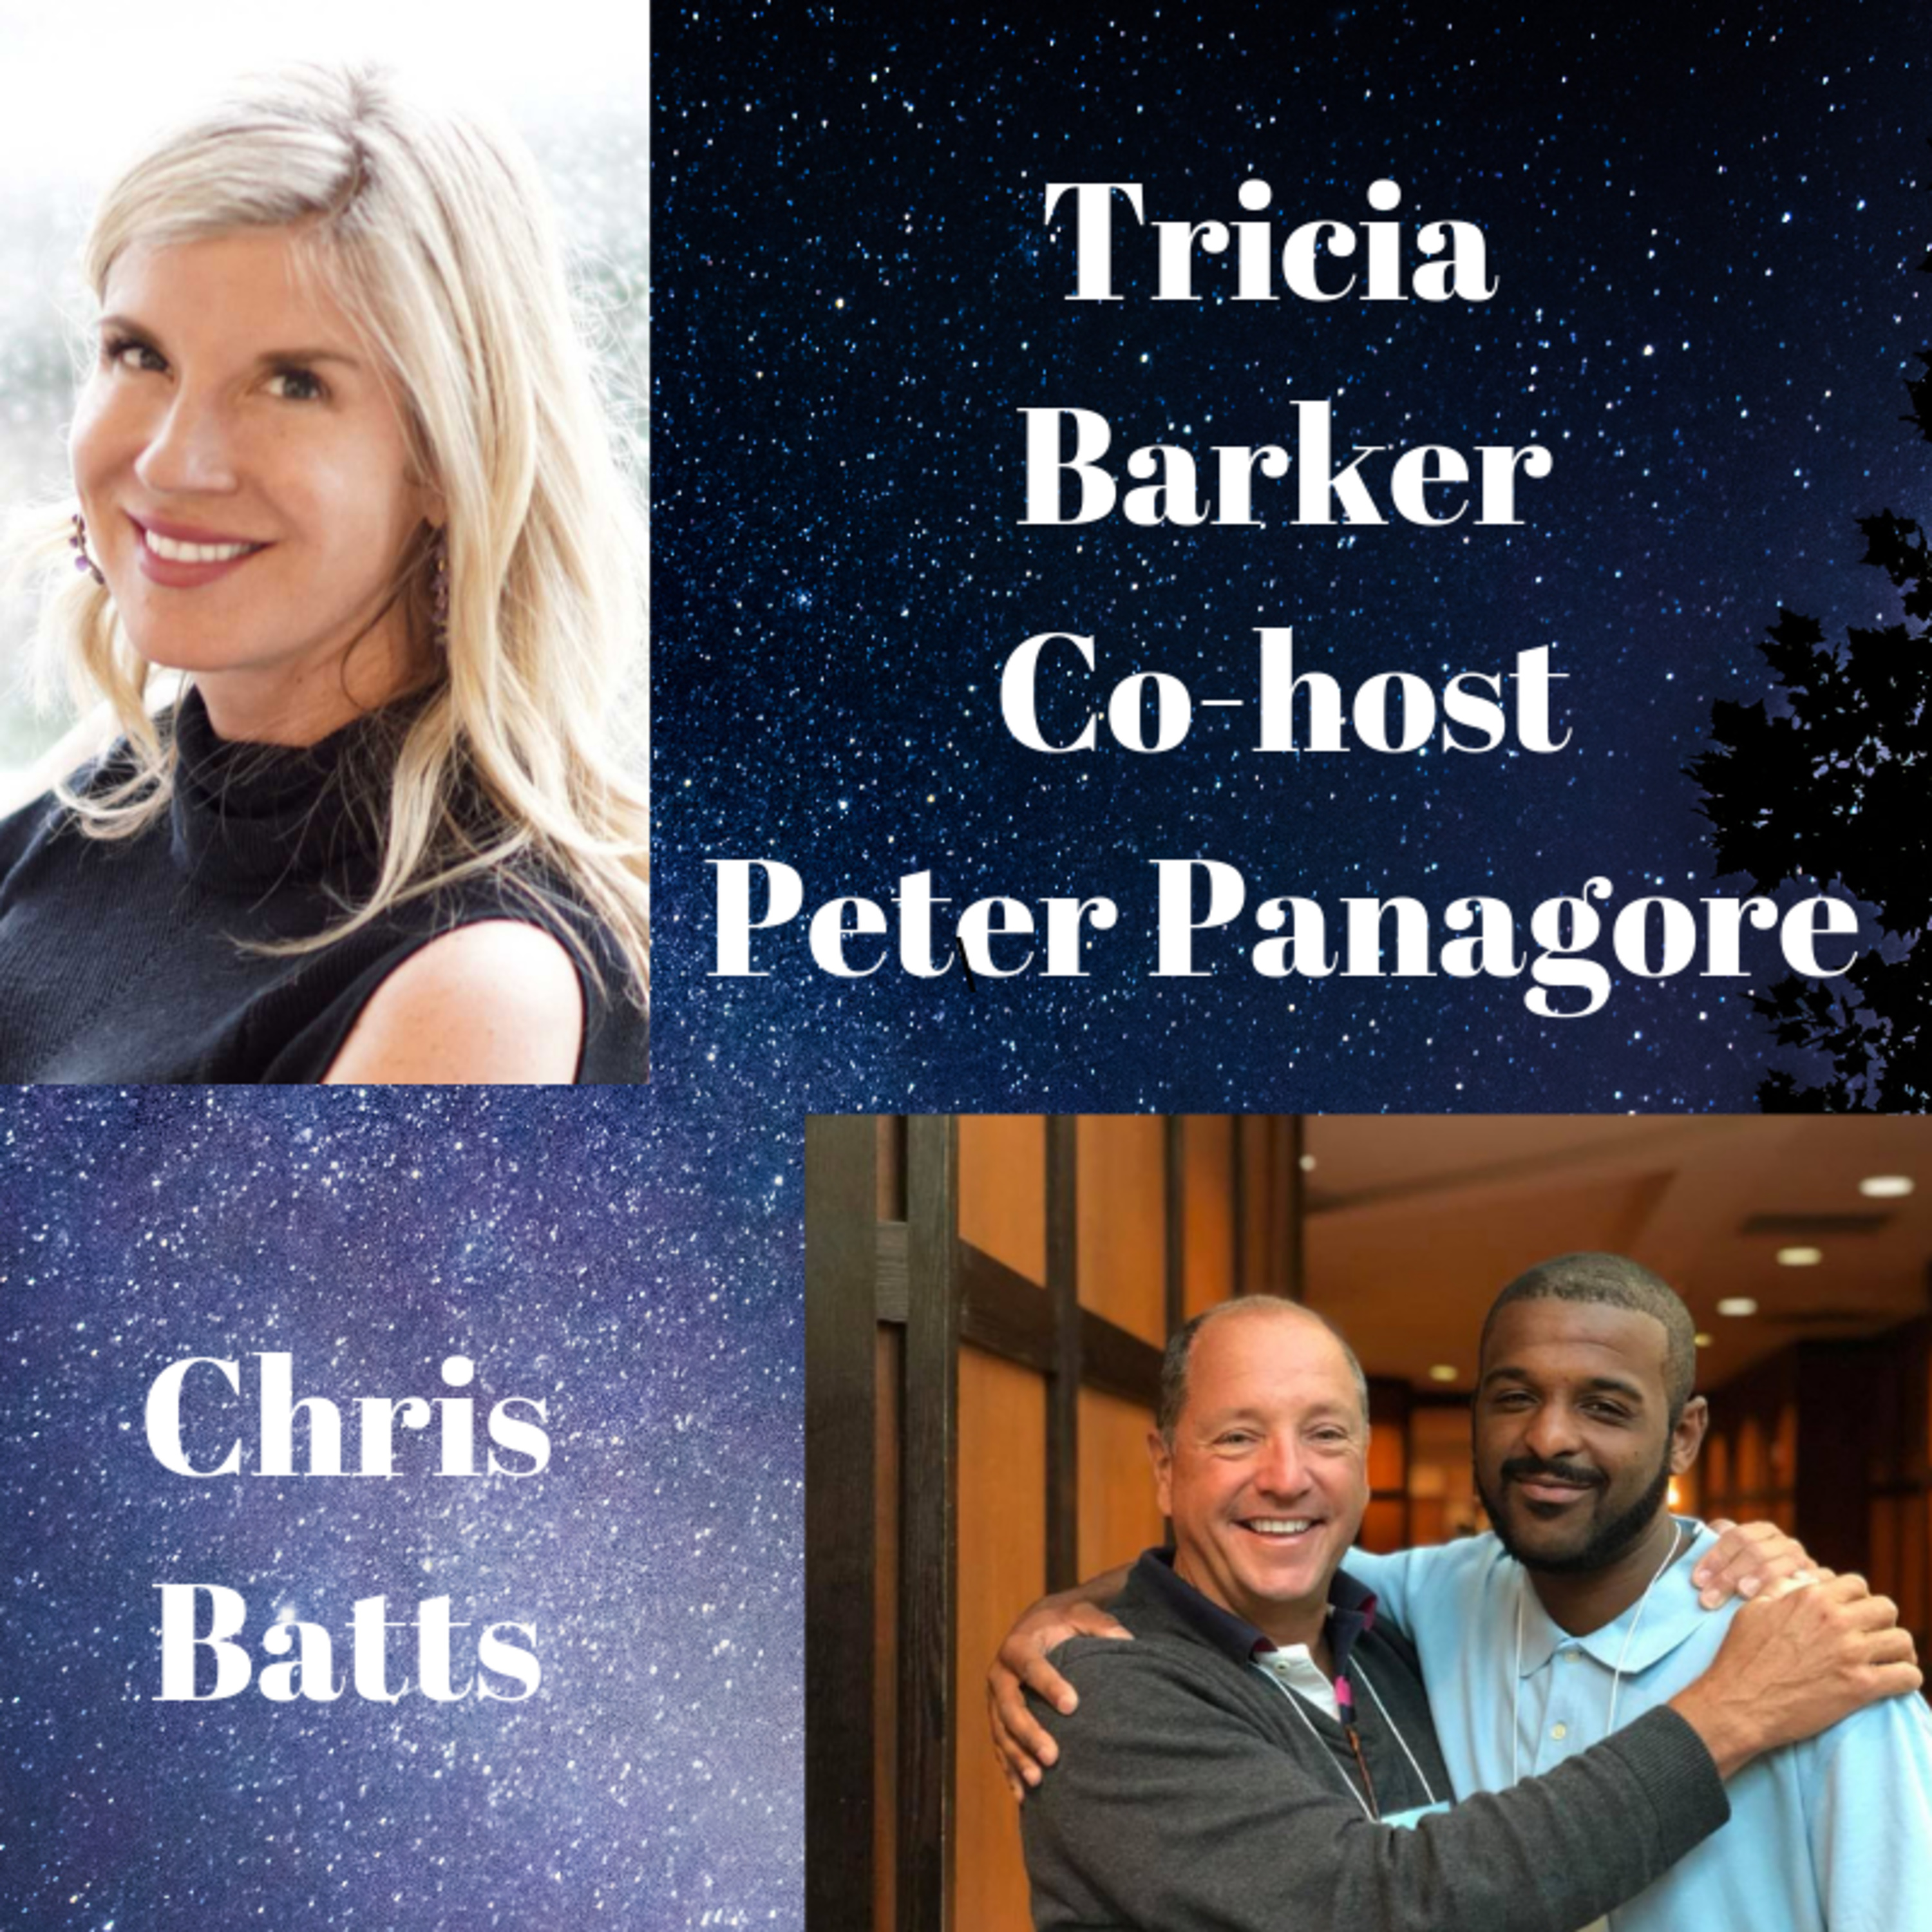 S2 Ep. 15 Chris Batts ---Tricia Barker (co-host Peter Panagore) Conversations with Near-Death Experiencers Live at IANDS 2018